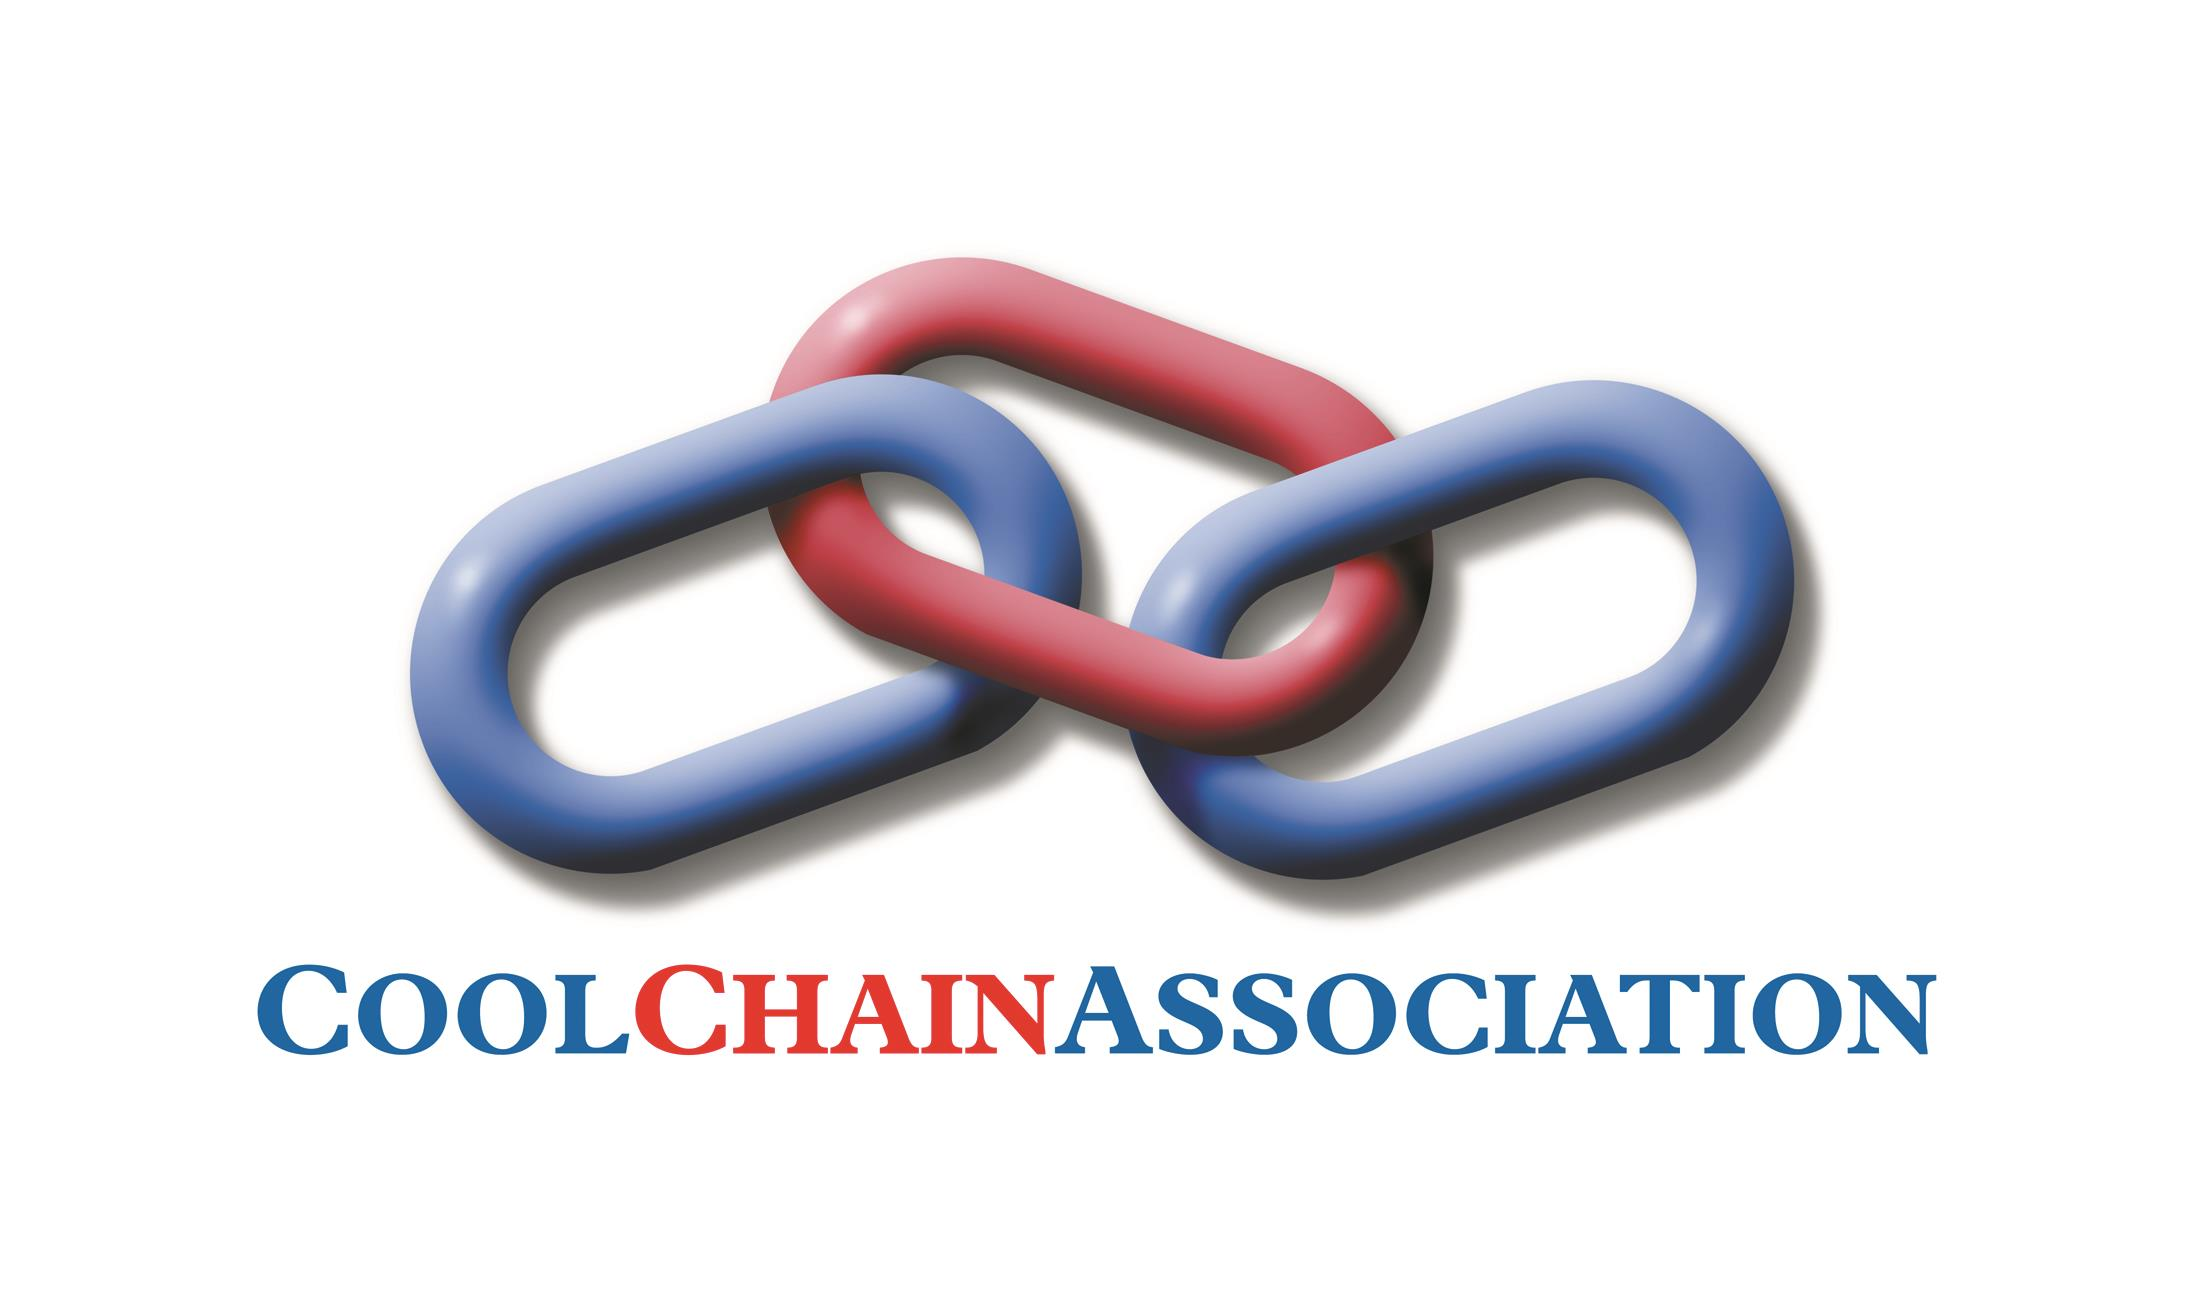 Cool Chain Association Chairman calls for air cargo community to create its own perishables supply chain standard